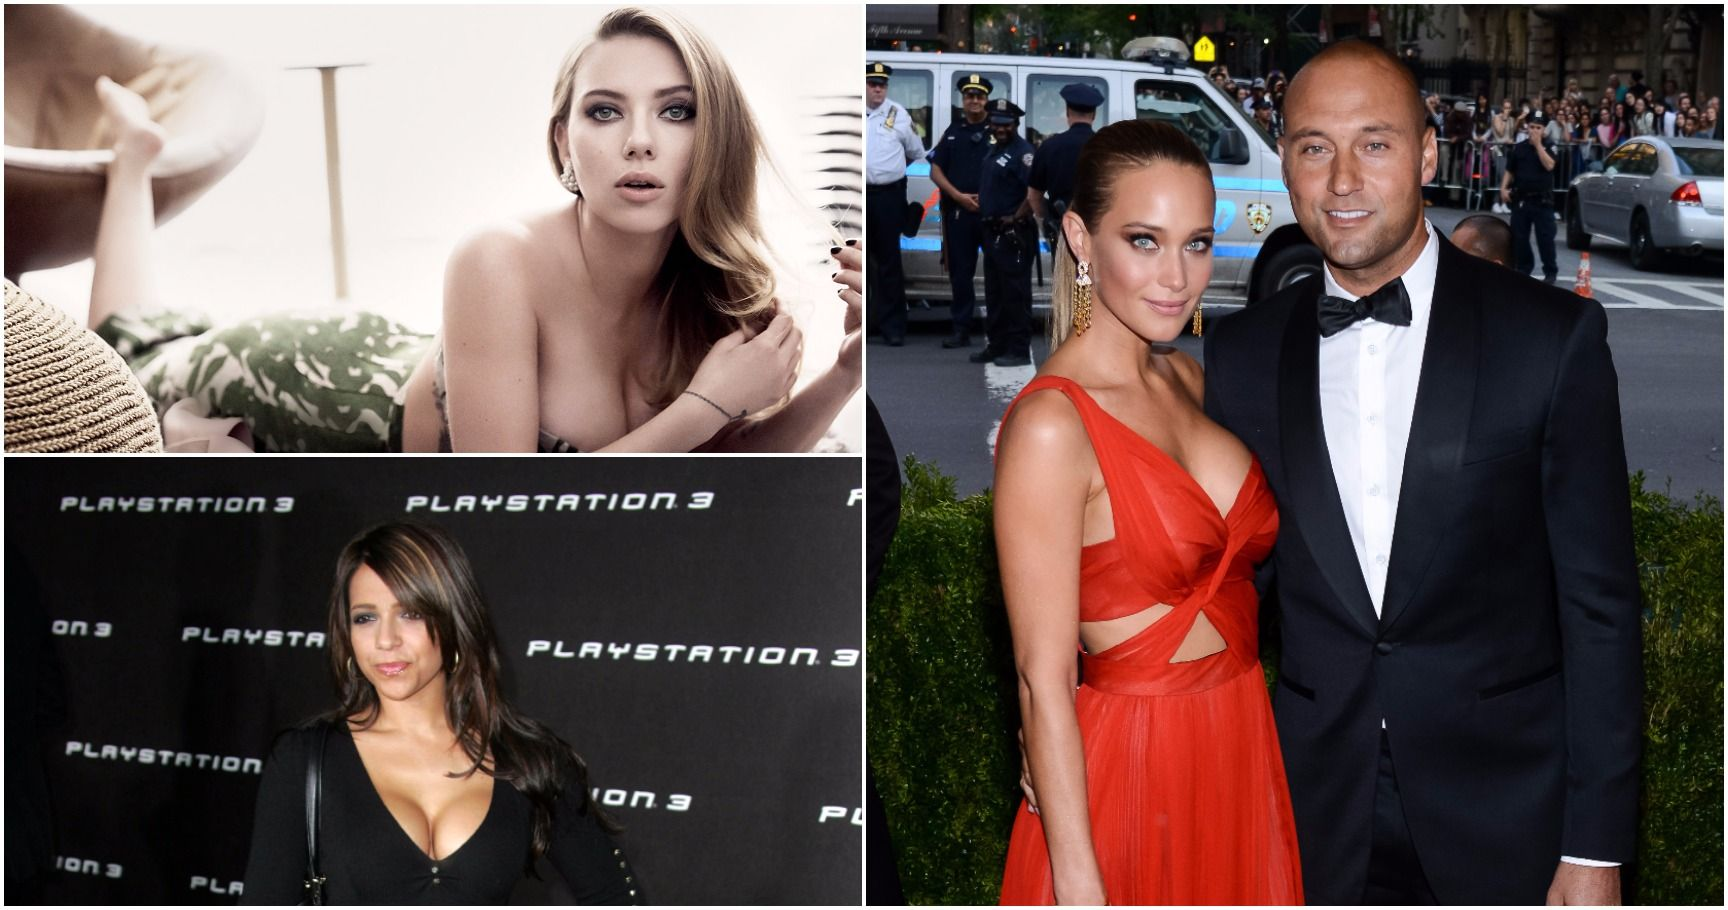 15 Lucky Men Who Have Dated The Hottest Women Alive